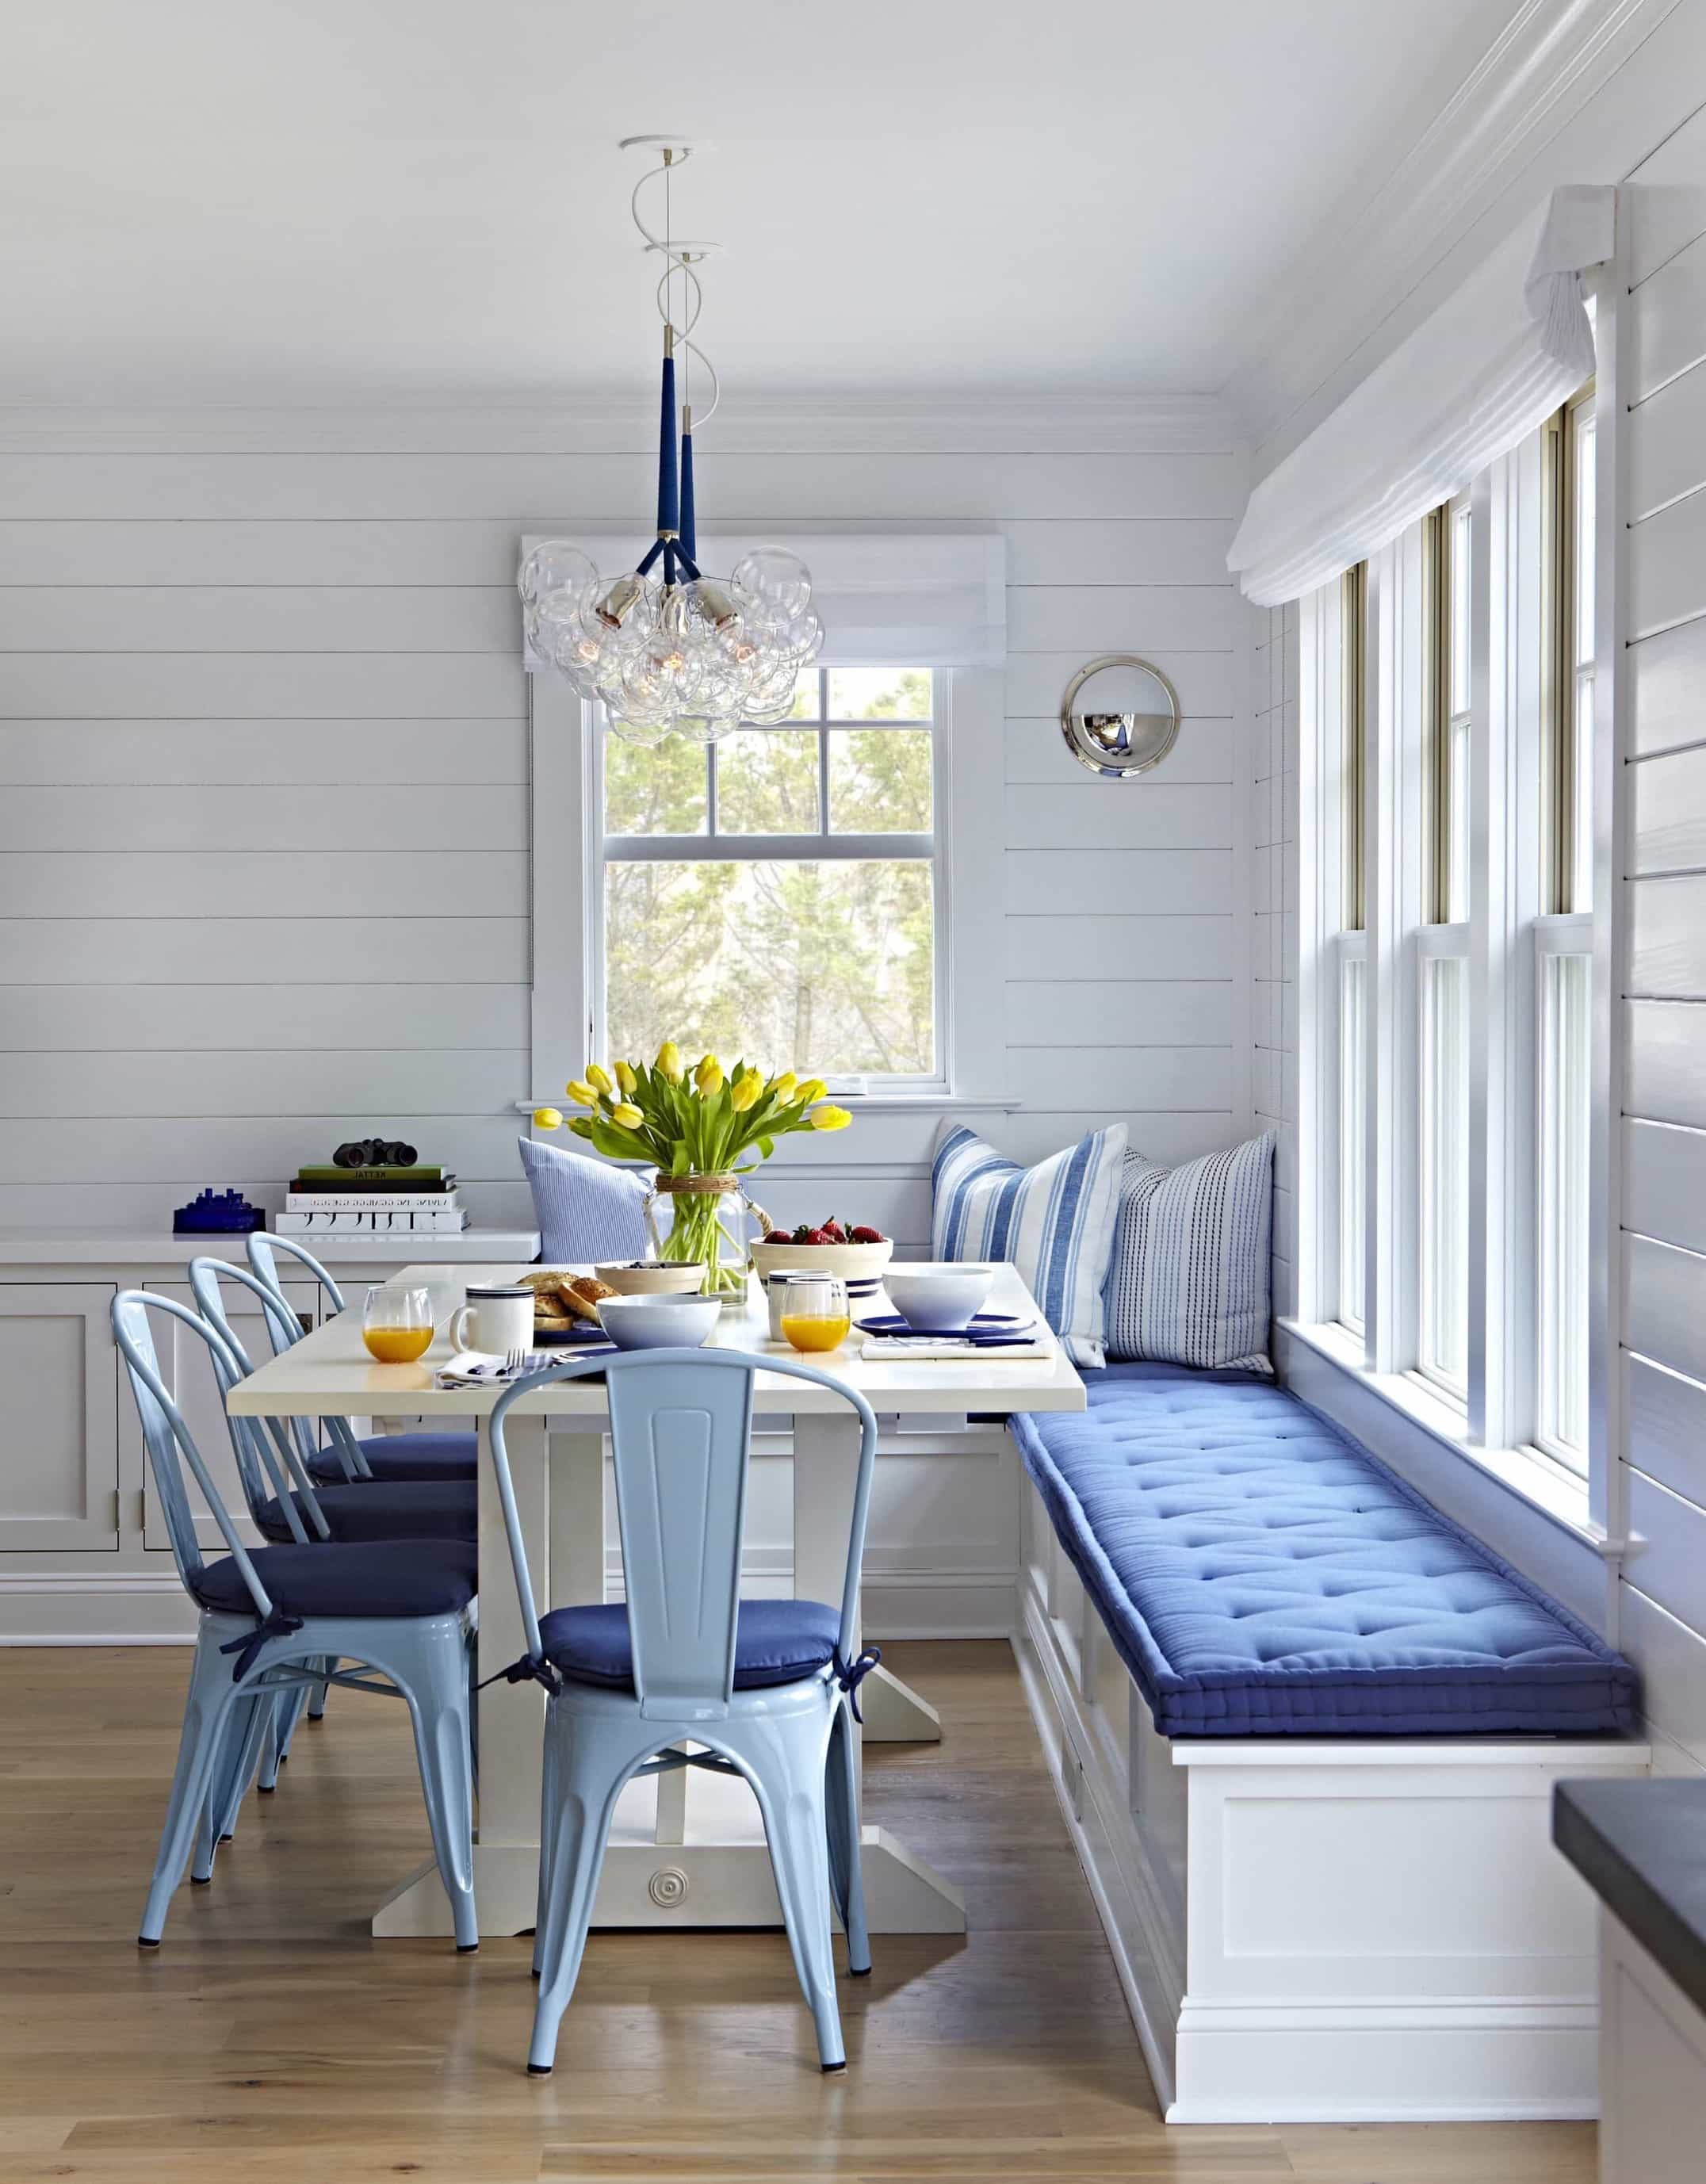 Featured Image of Breakfast Nook In Blue And White